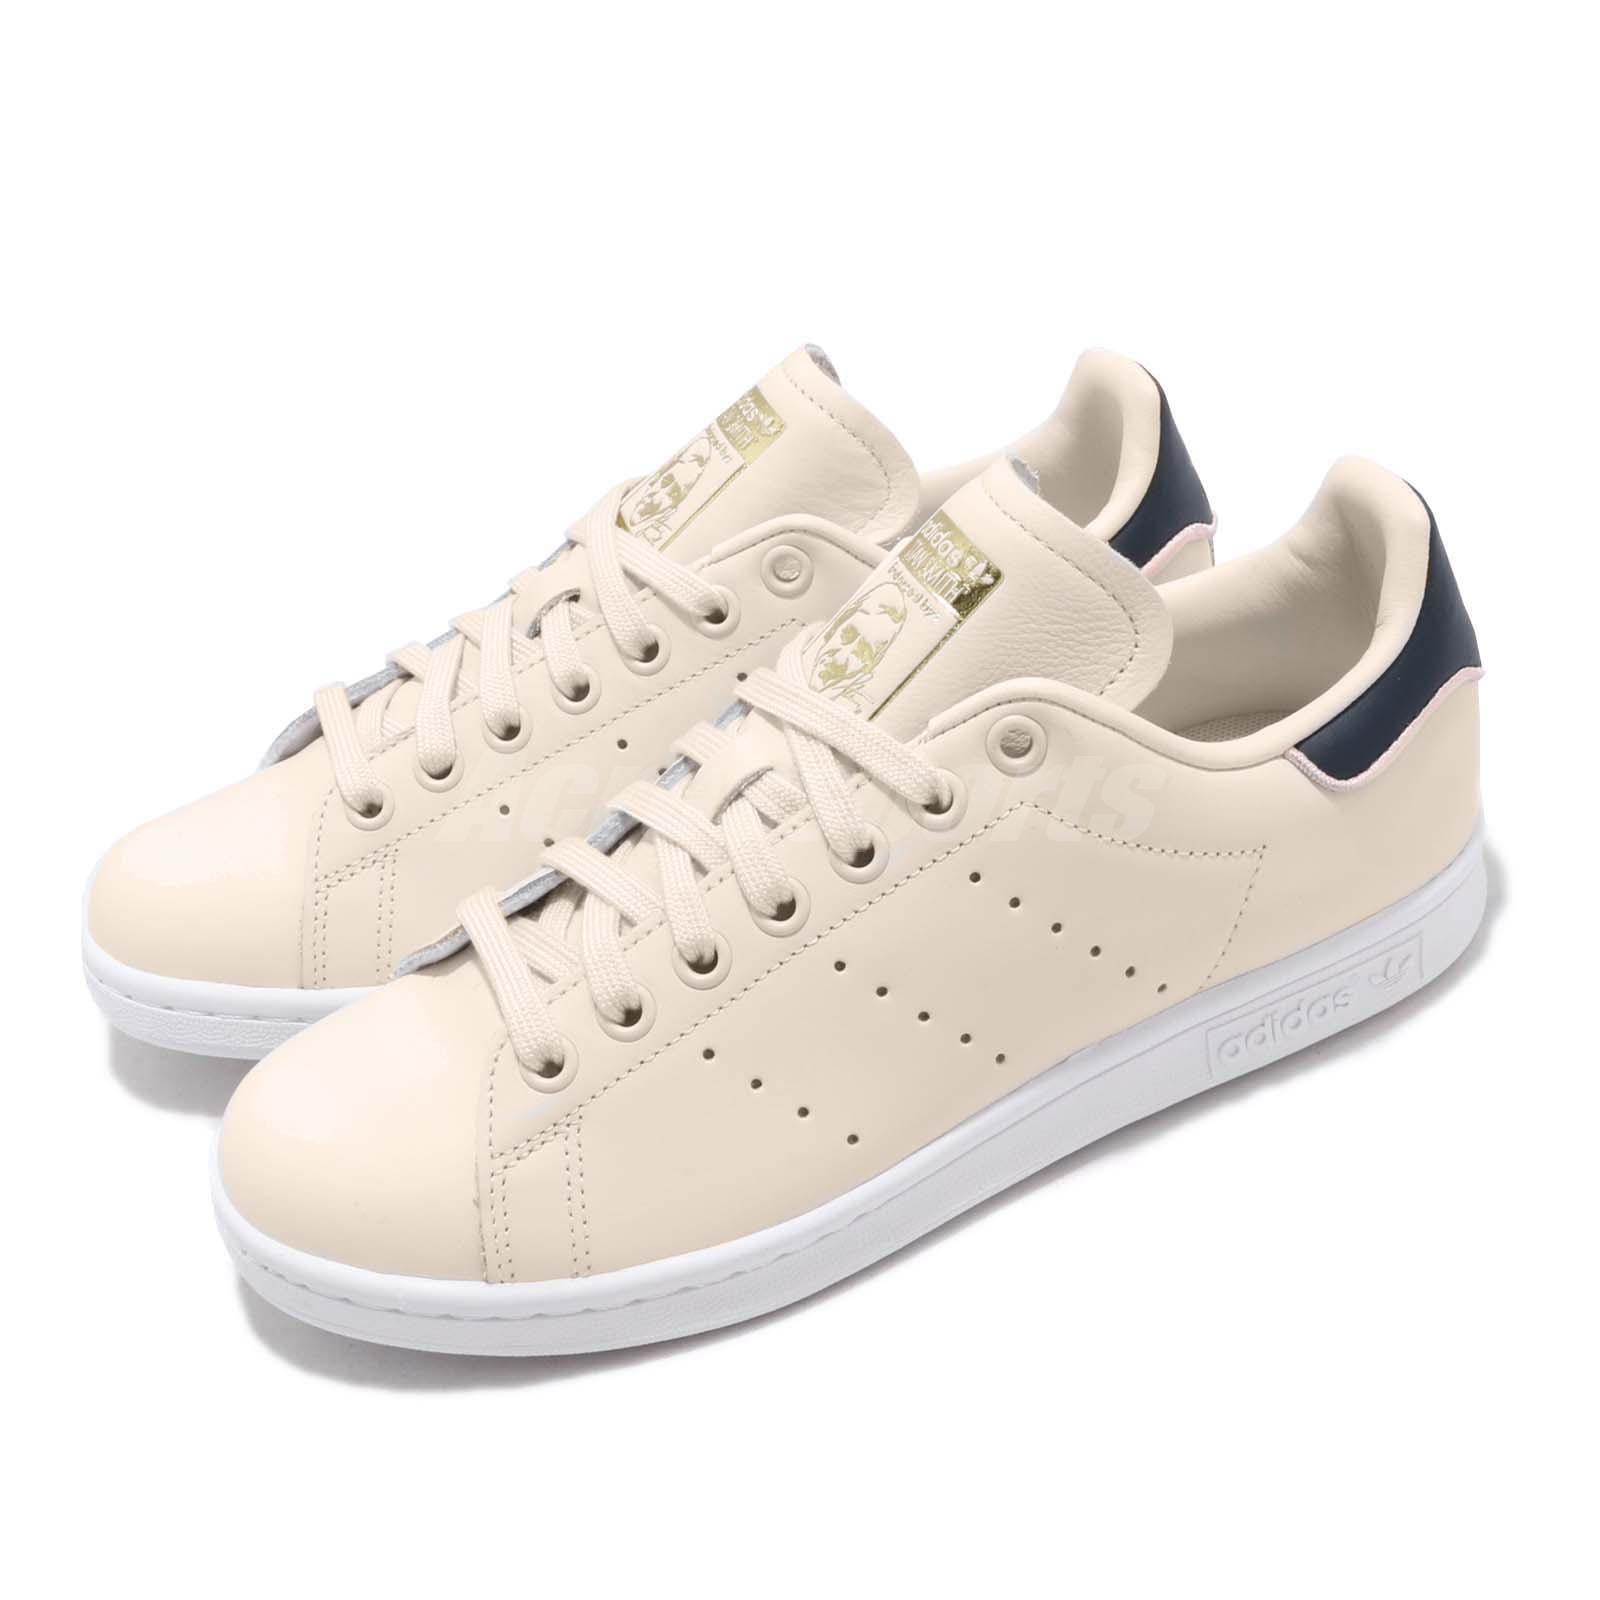 superior quality e3509 9555f Details about adidas Originals Stan Smith W Ivory Navy Women Casual Shoes  Sneakers B41600